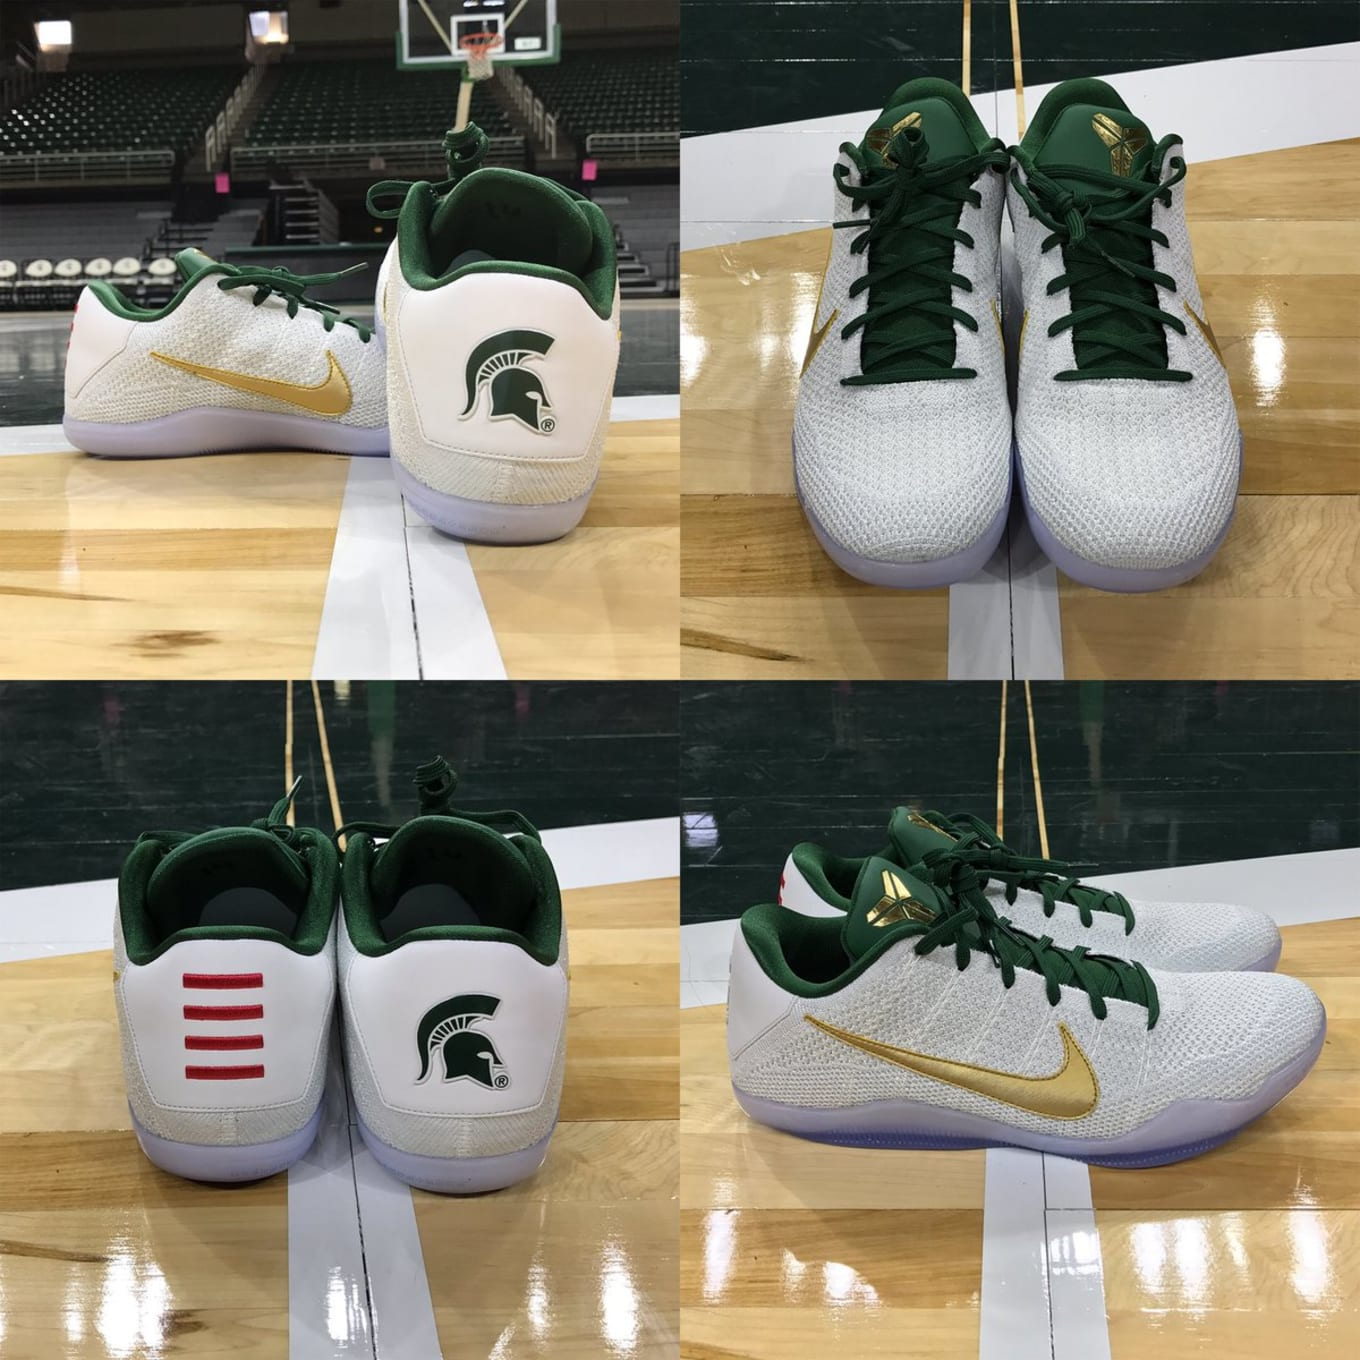 8b44a8e42f2f Michigan State Has Exclusive Kobe and KD Nikes for the New Season. The Kobe  11 and KD 9 in Sparty colors.